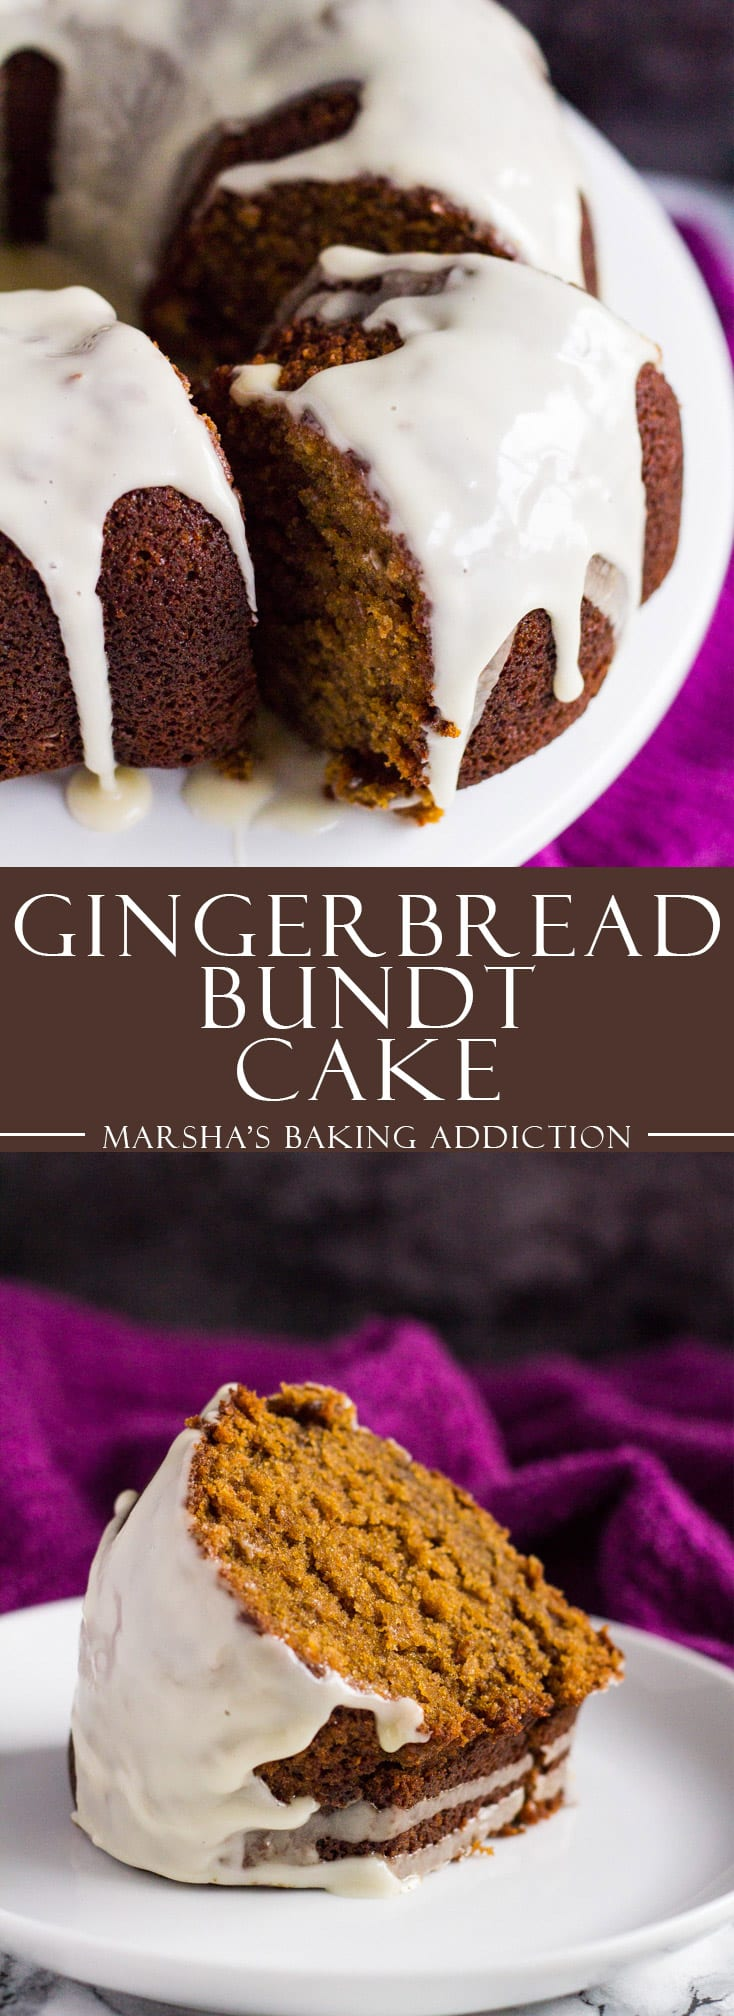 A long Pinterest image of Gingerbread Bundt Cake with text overlay.